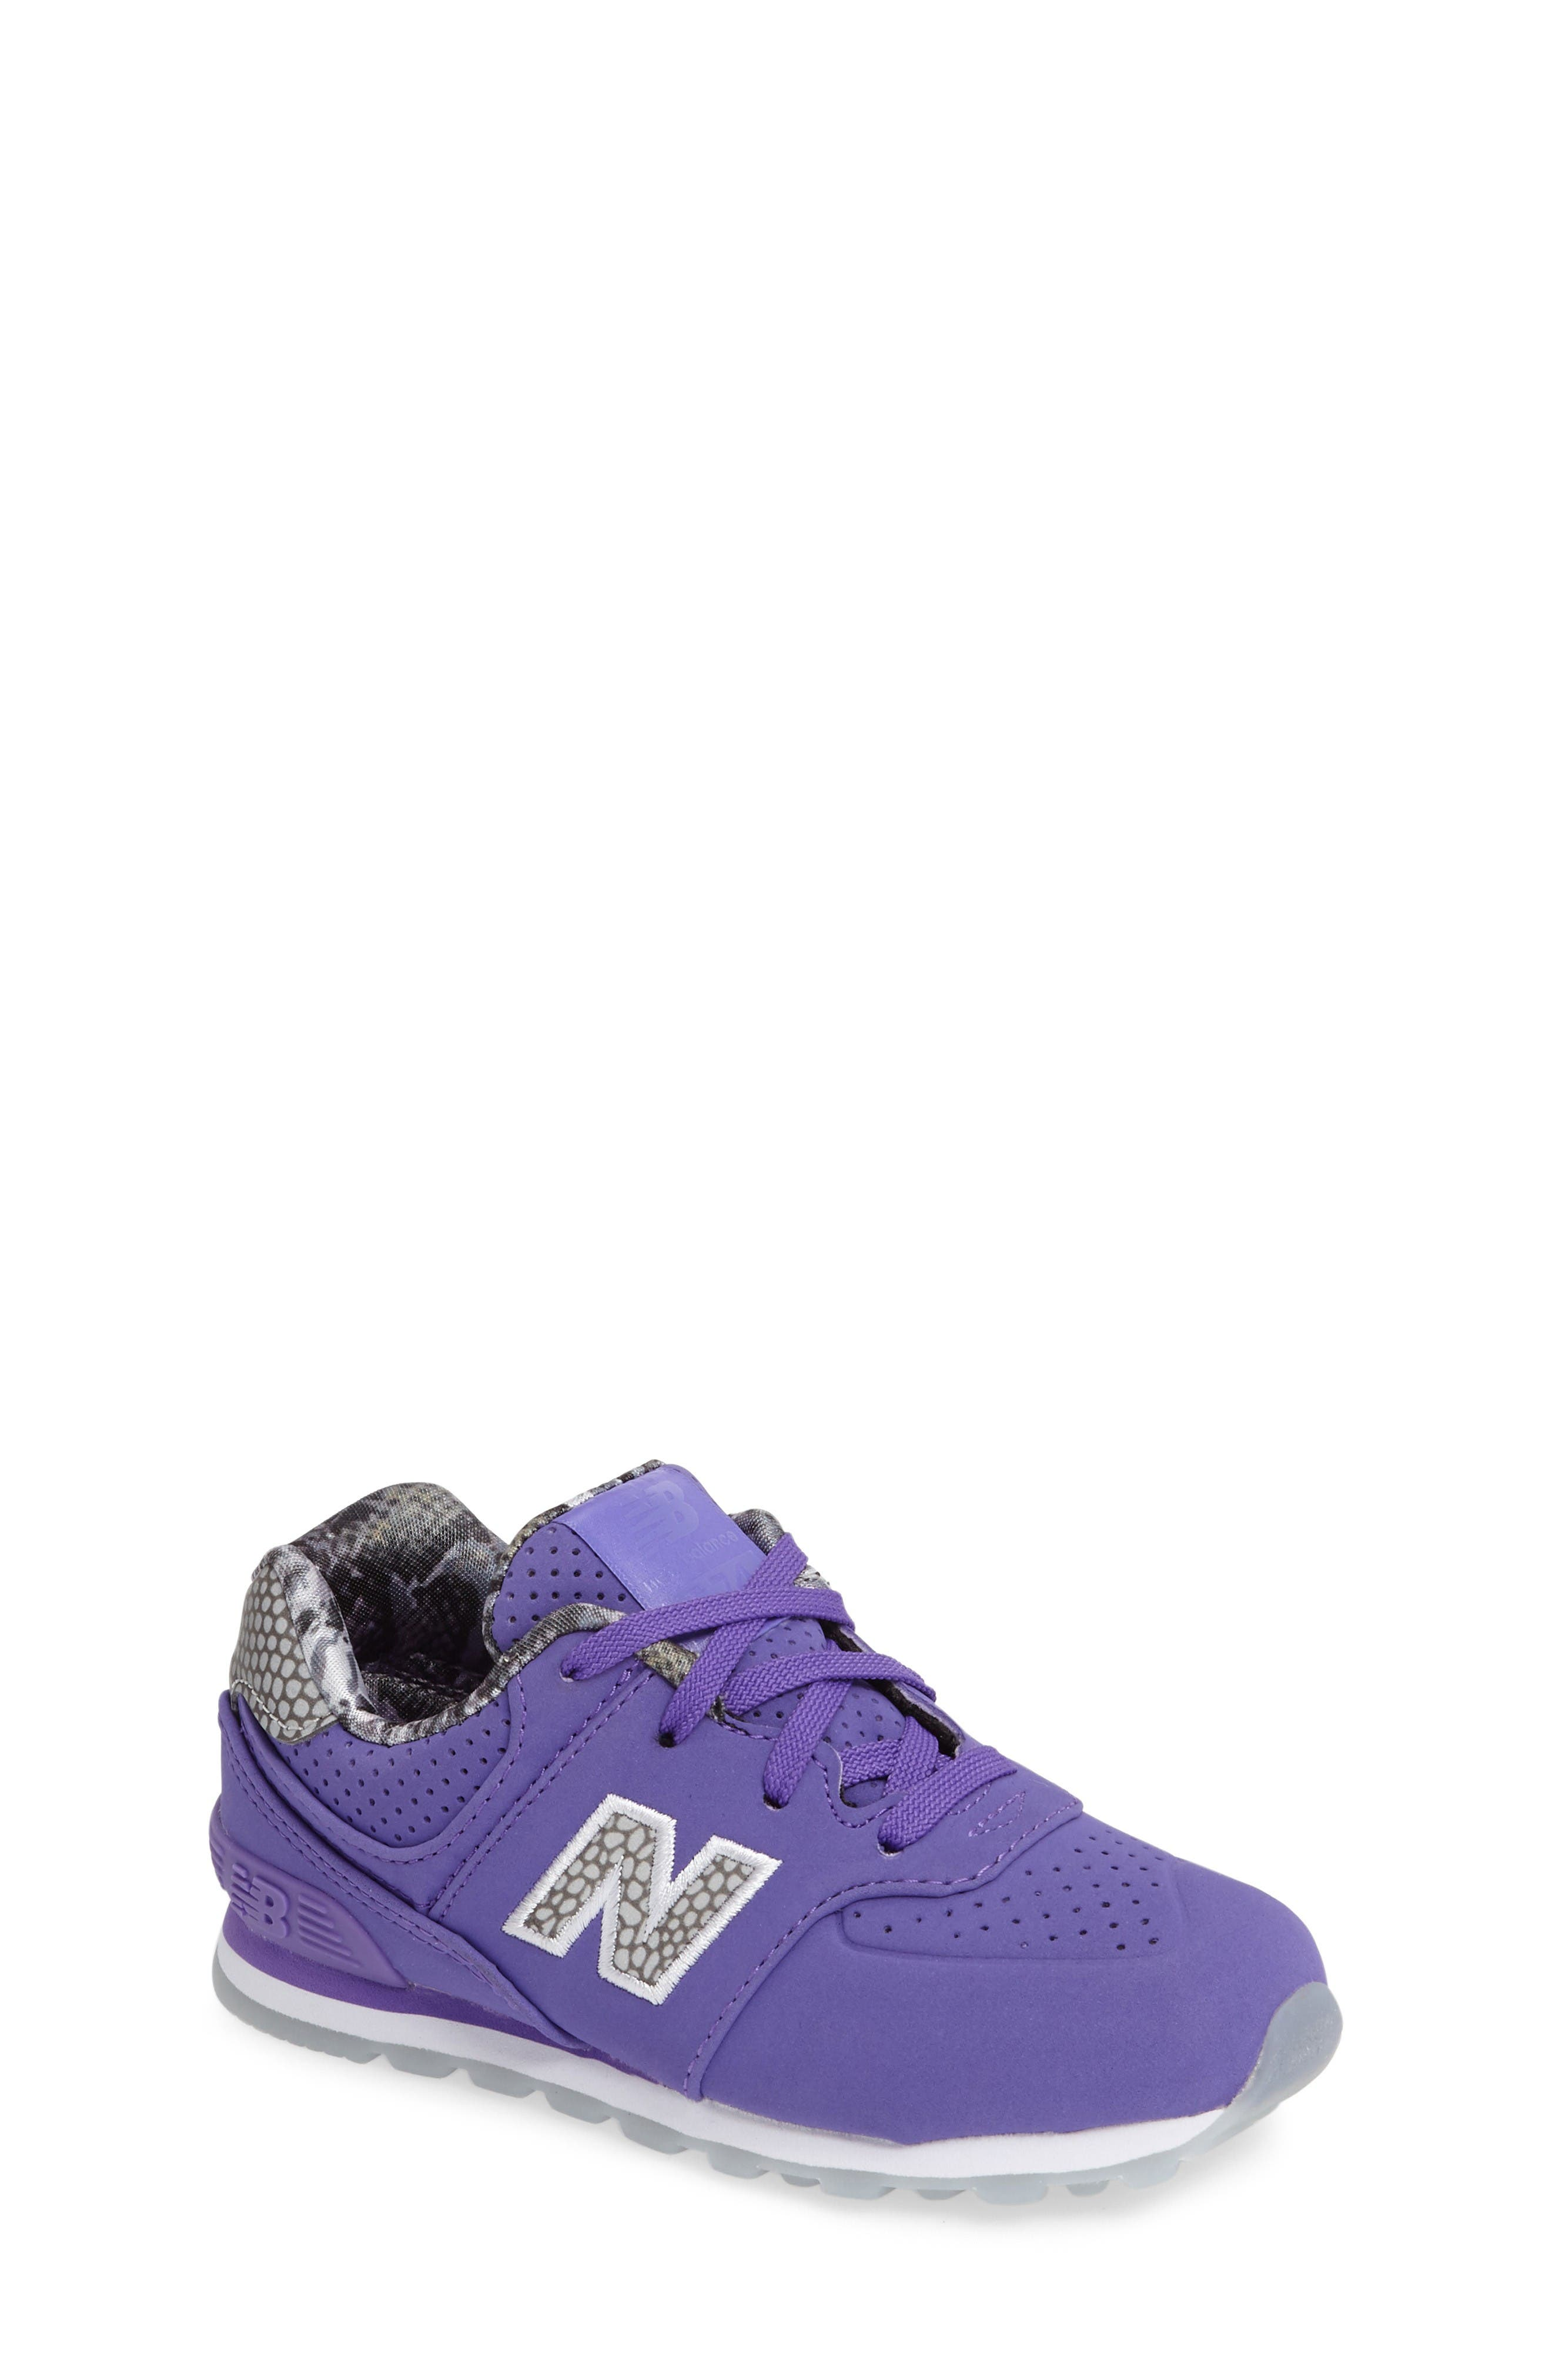 NEW BALANCE 574 Core Plus Sneaker